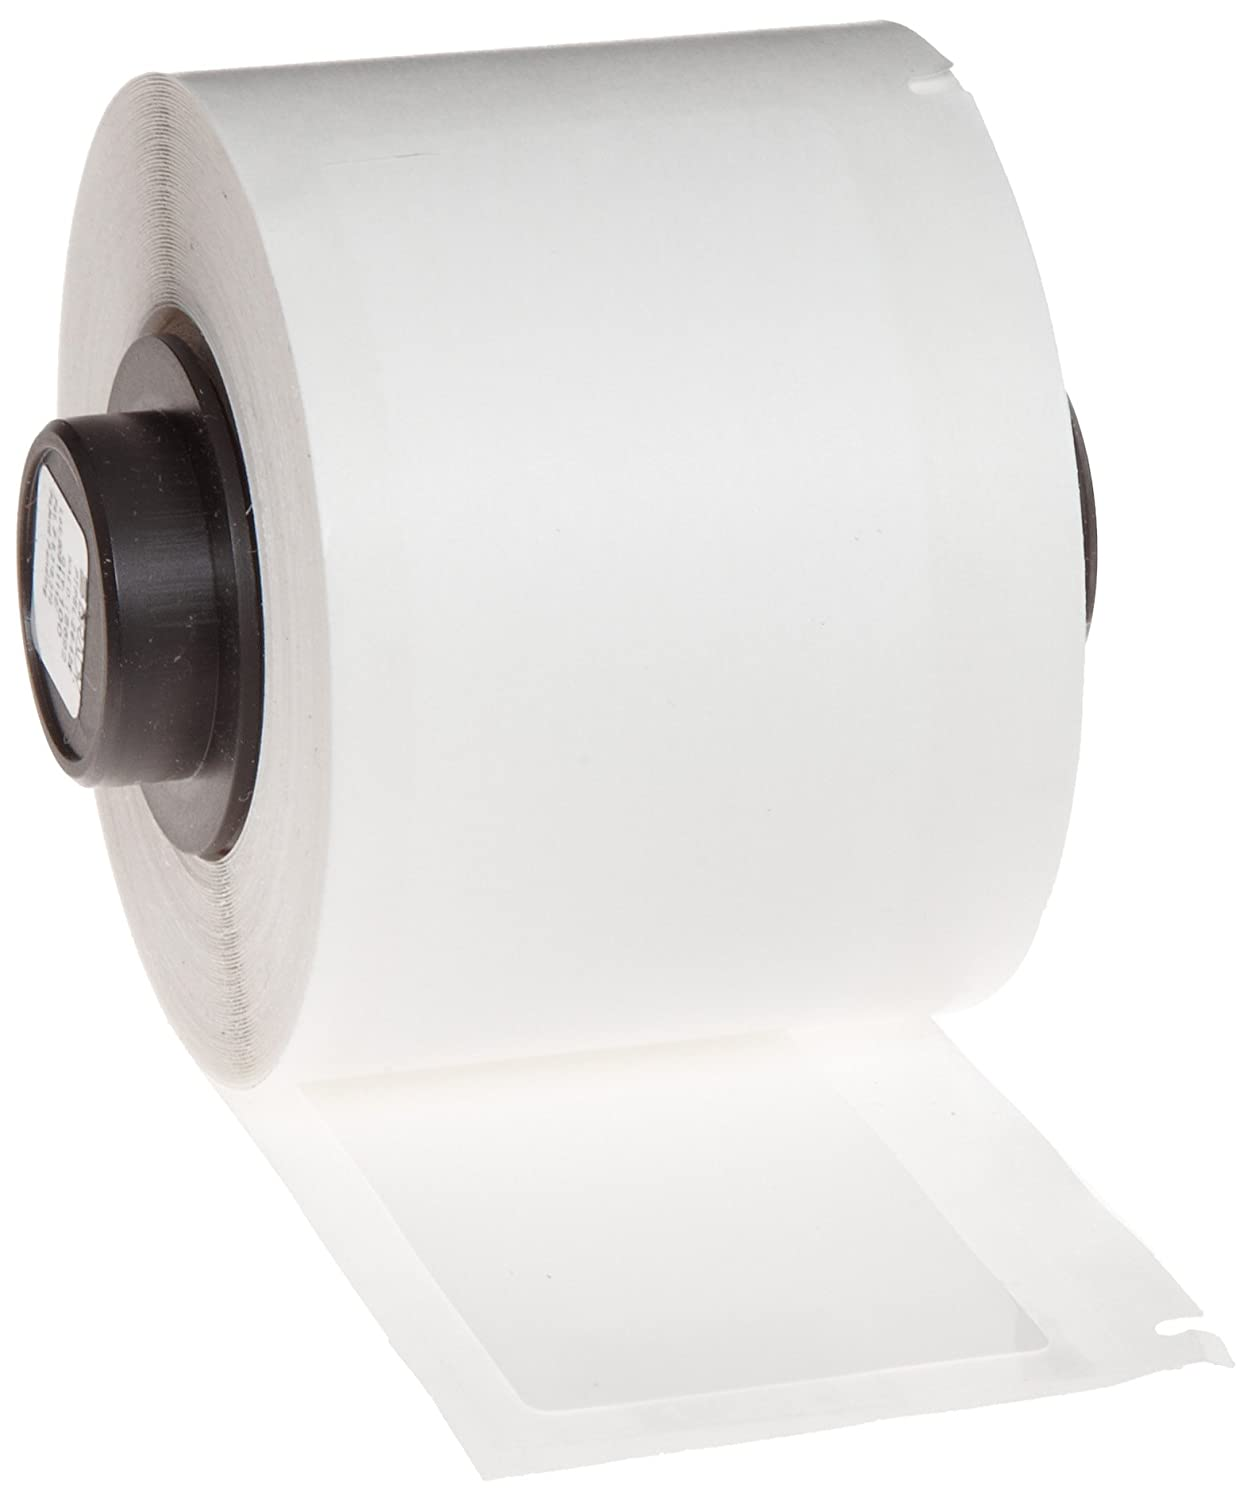 Brady PTL-39-422 TLS 2200 and TLS PC Link 0.375\' Width x 0.6\' Height, B-422 Permanent Polyester, Gloss Finish White Label (750 per Roll)